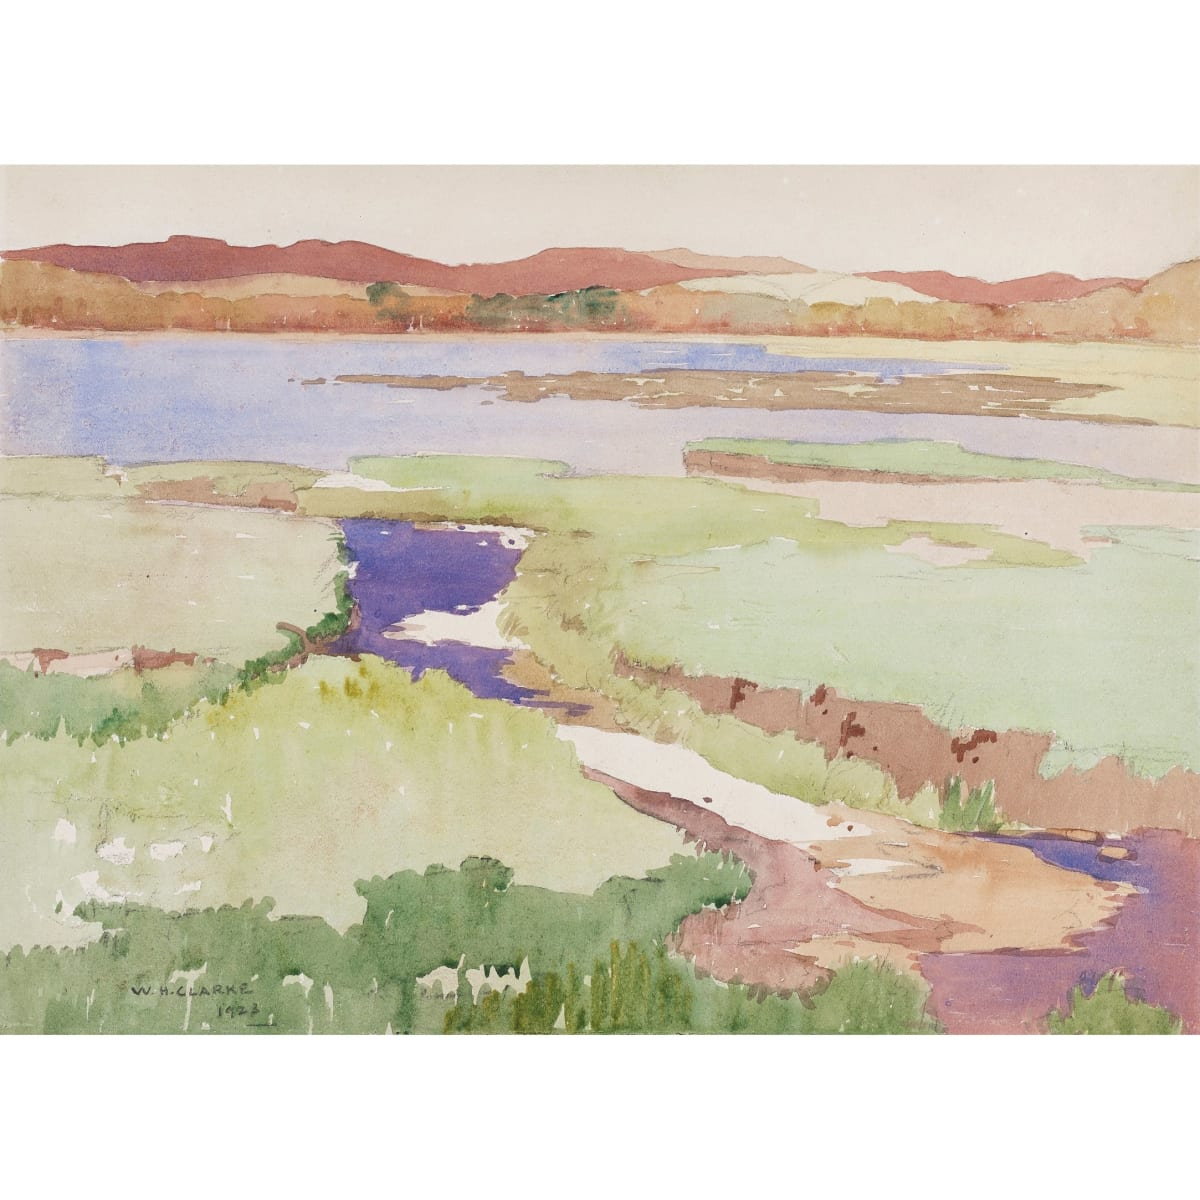 William Hanna Clarke On the river Dee, 1923 signed and dated 1923 watercolour 11 x 14 inches